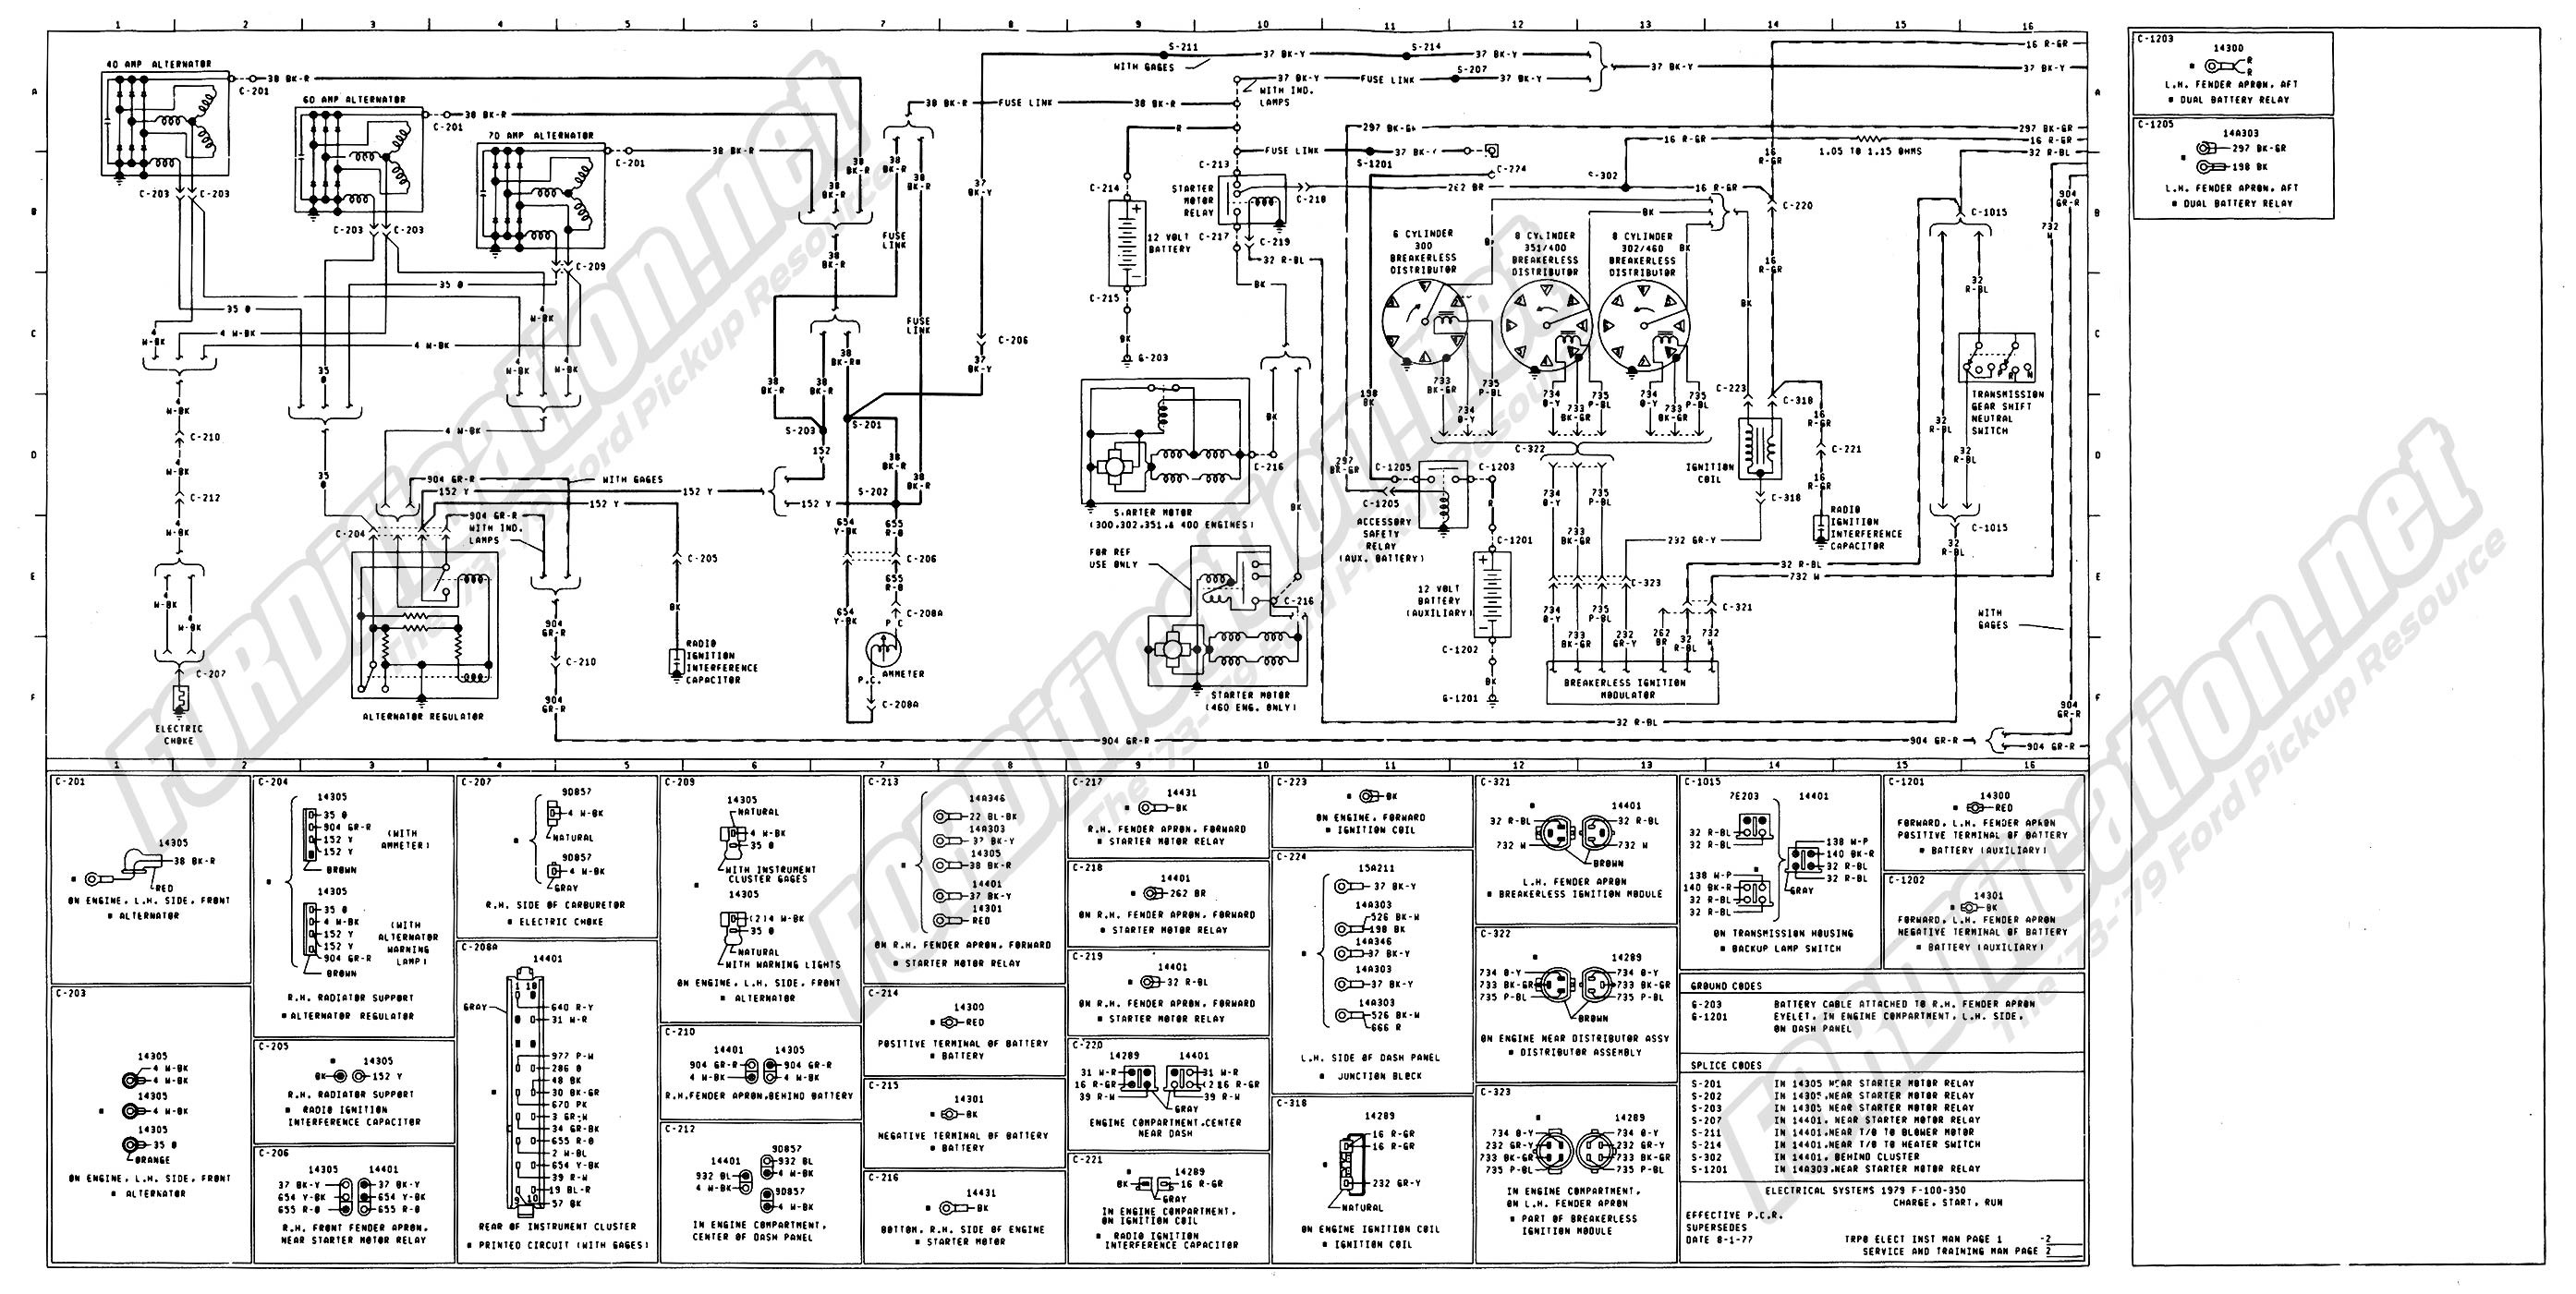 1967 f250 wiring diagram - wiring diagram schema product-energy -  product-energy.atmosphereconcept.it  atmosphereconcept.it